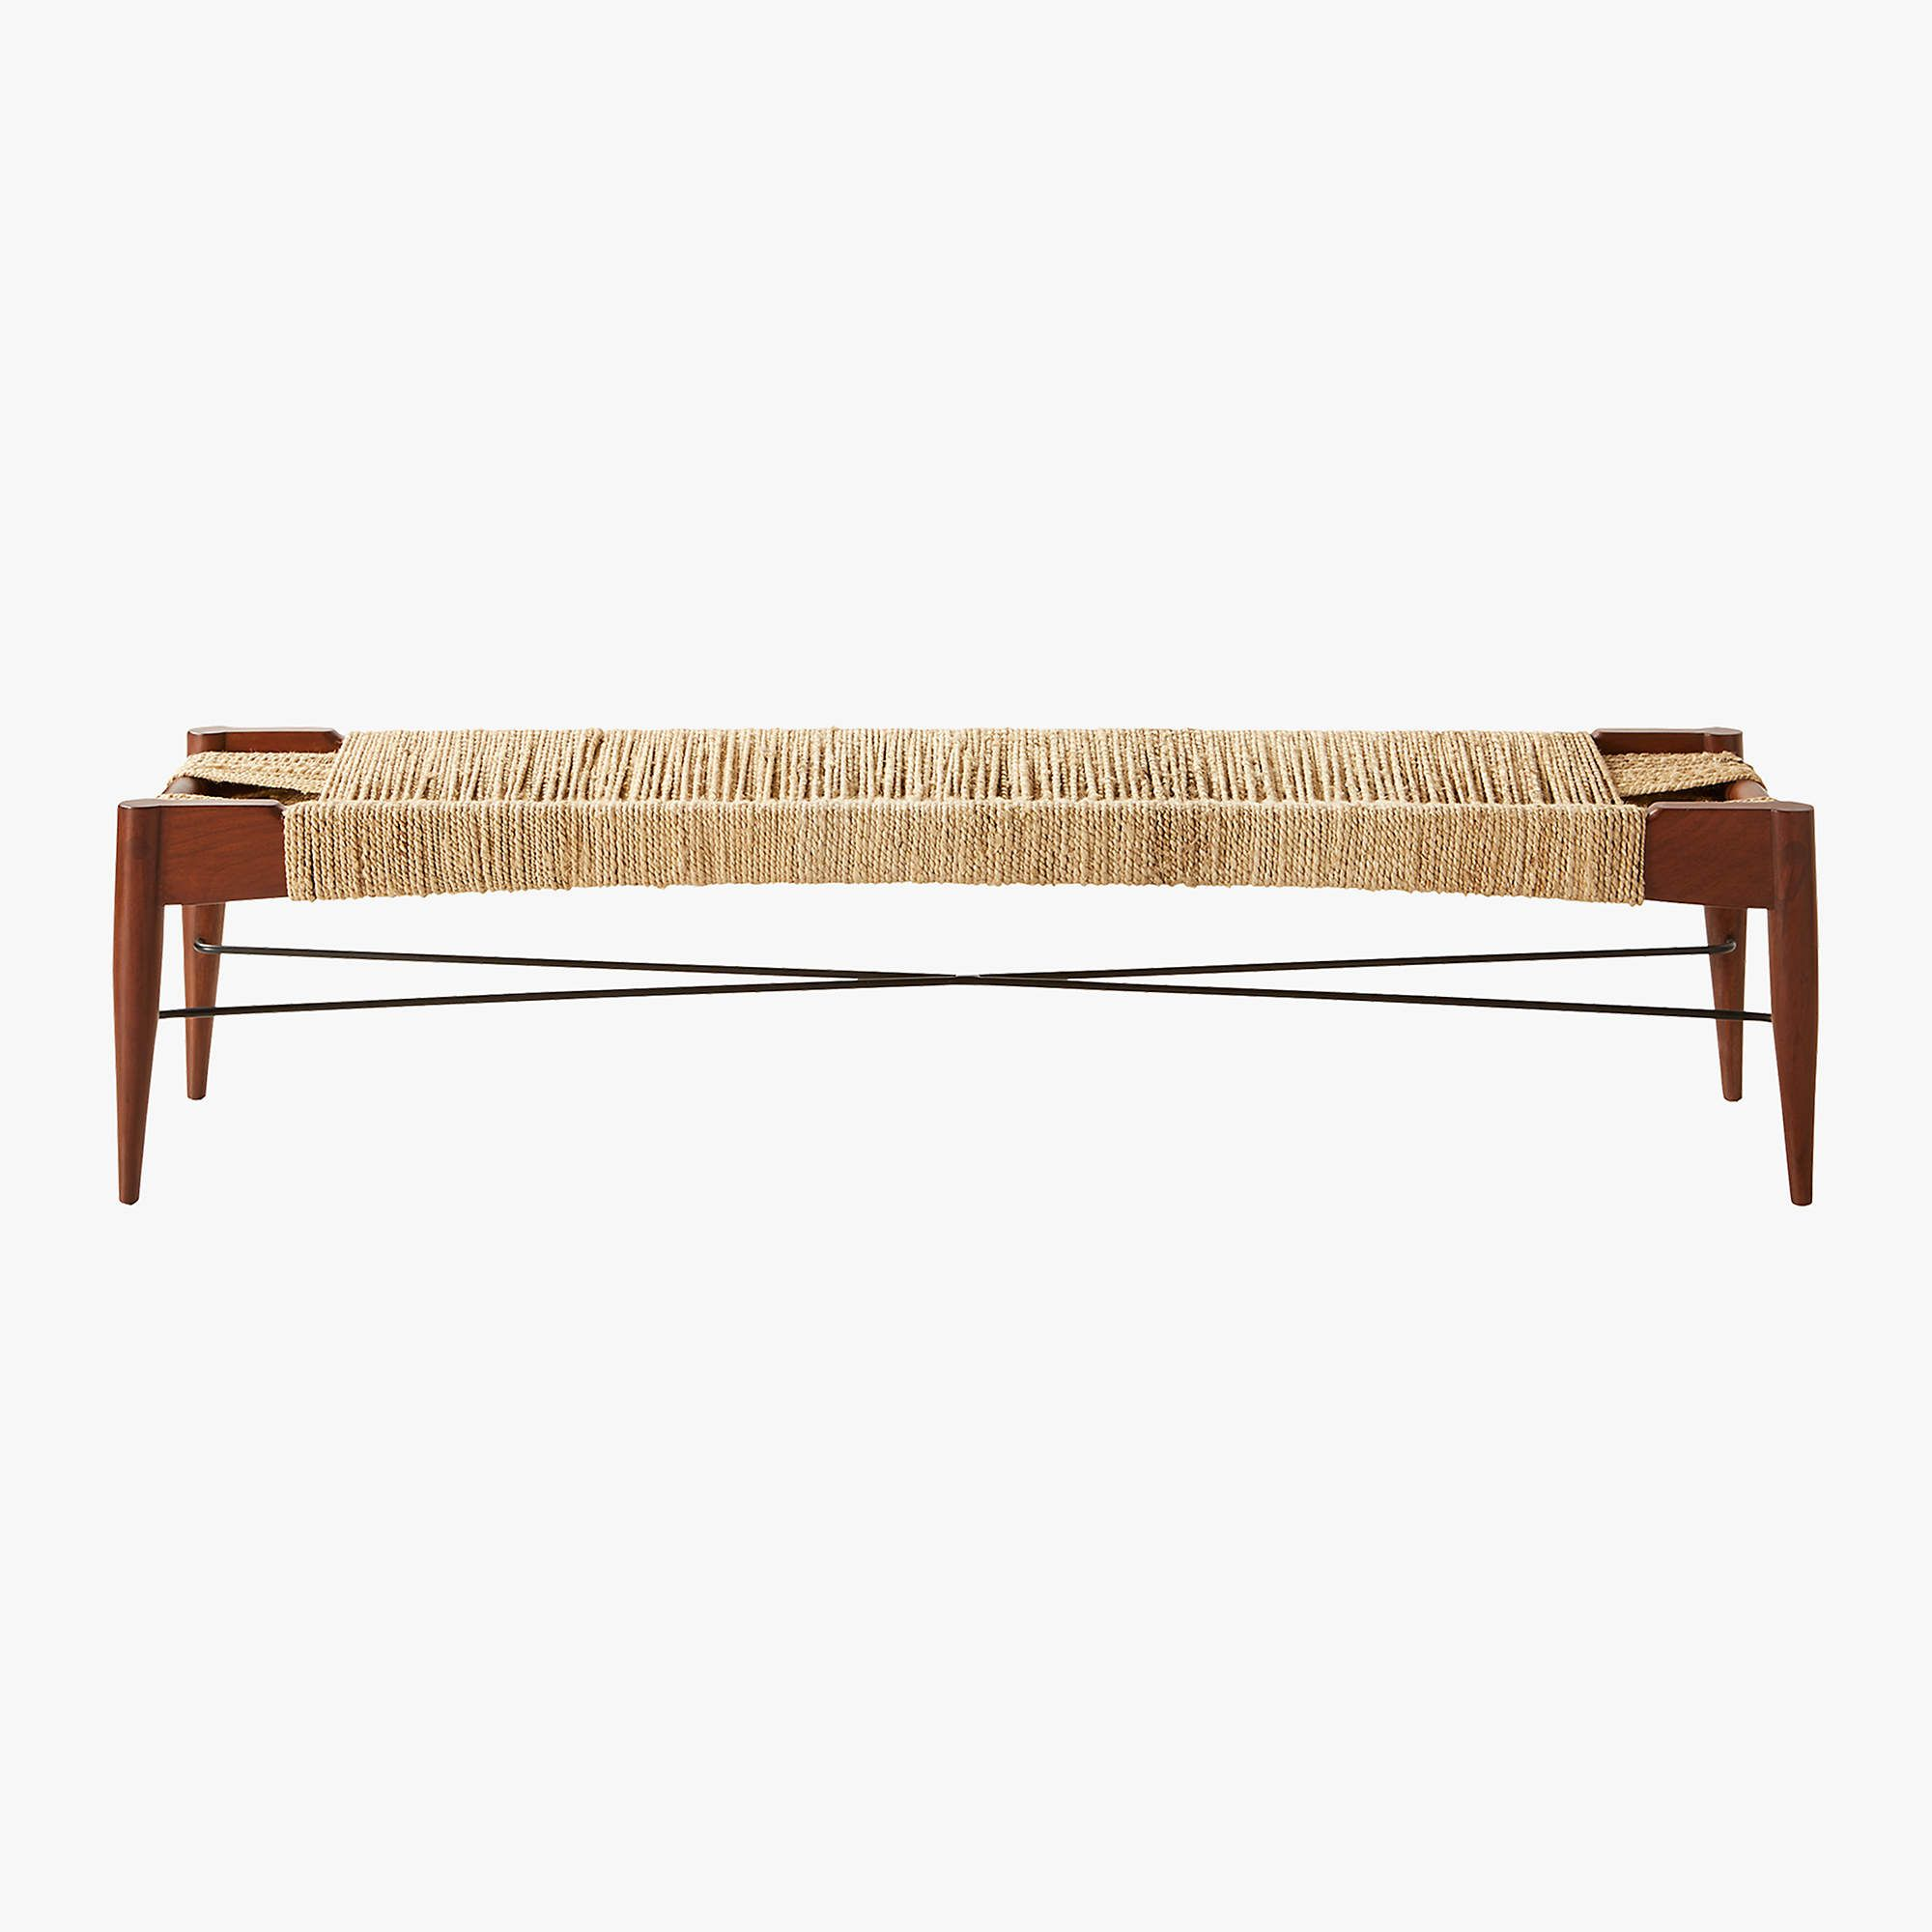 Wrap large bench from CB2